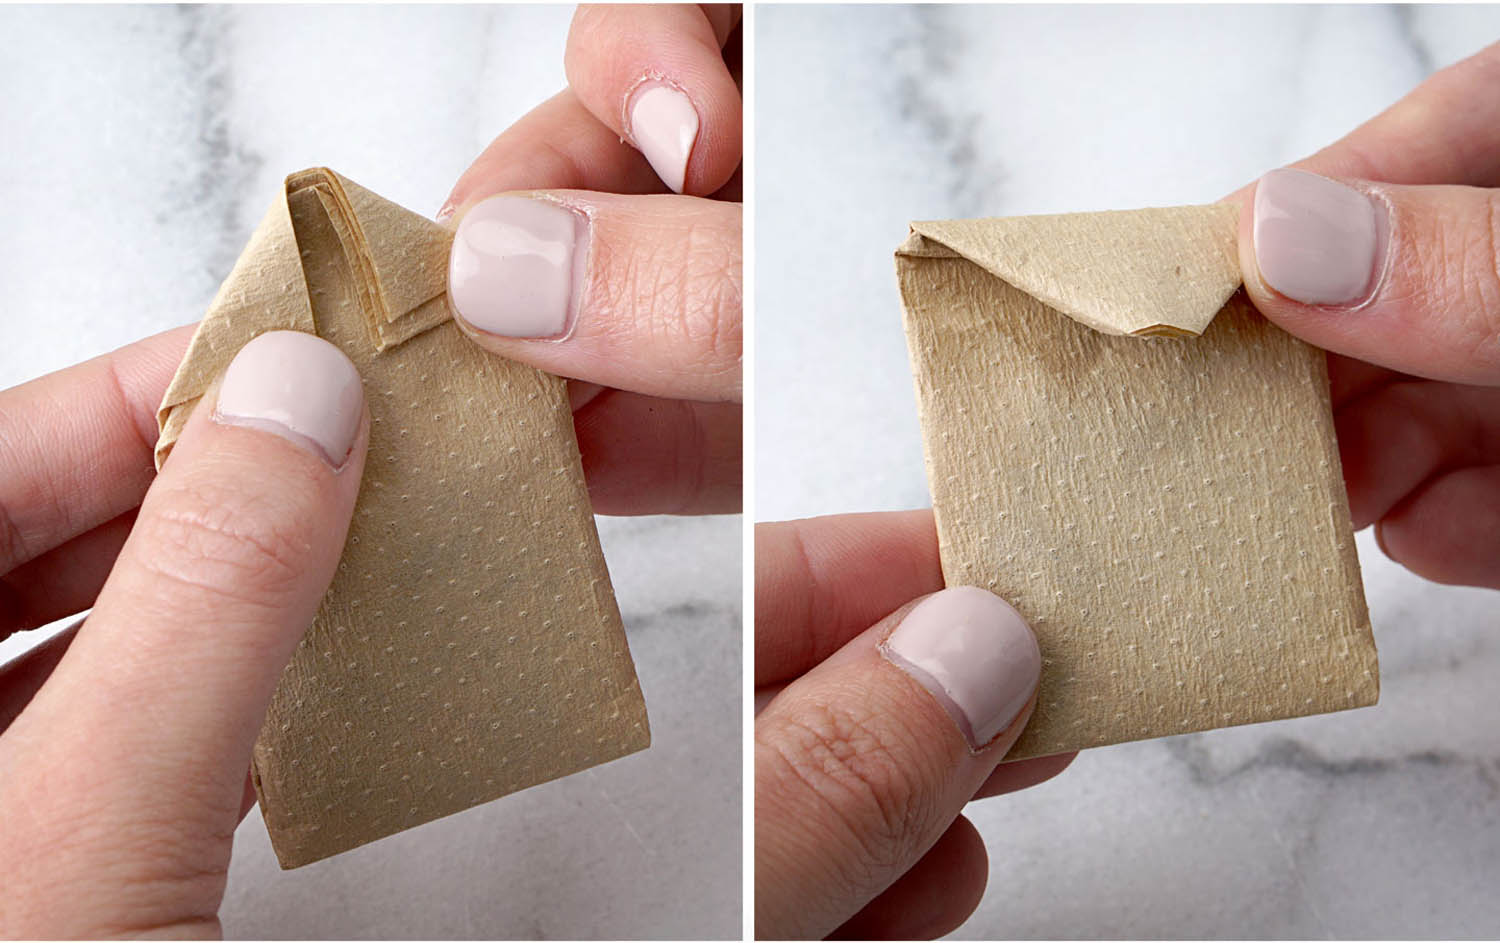 Folding the corners of the DIY tea bag to prepare it for the string